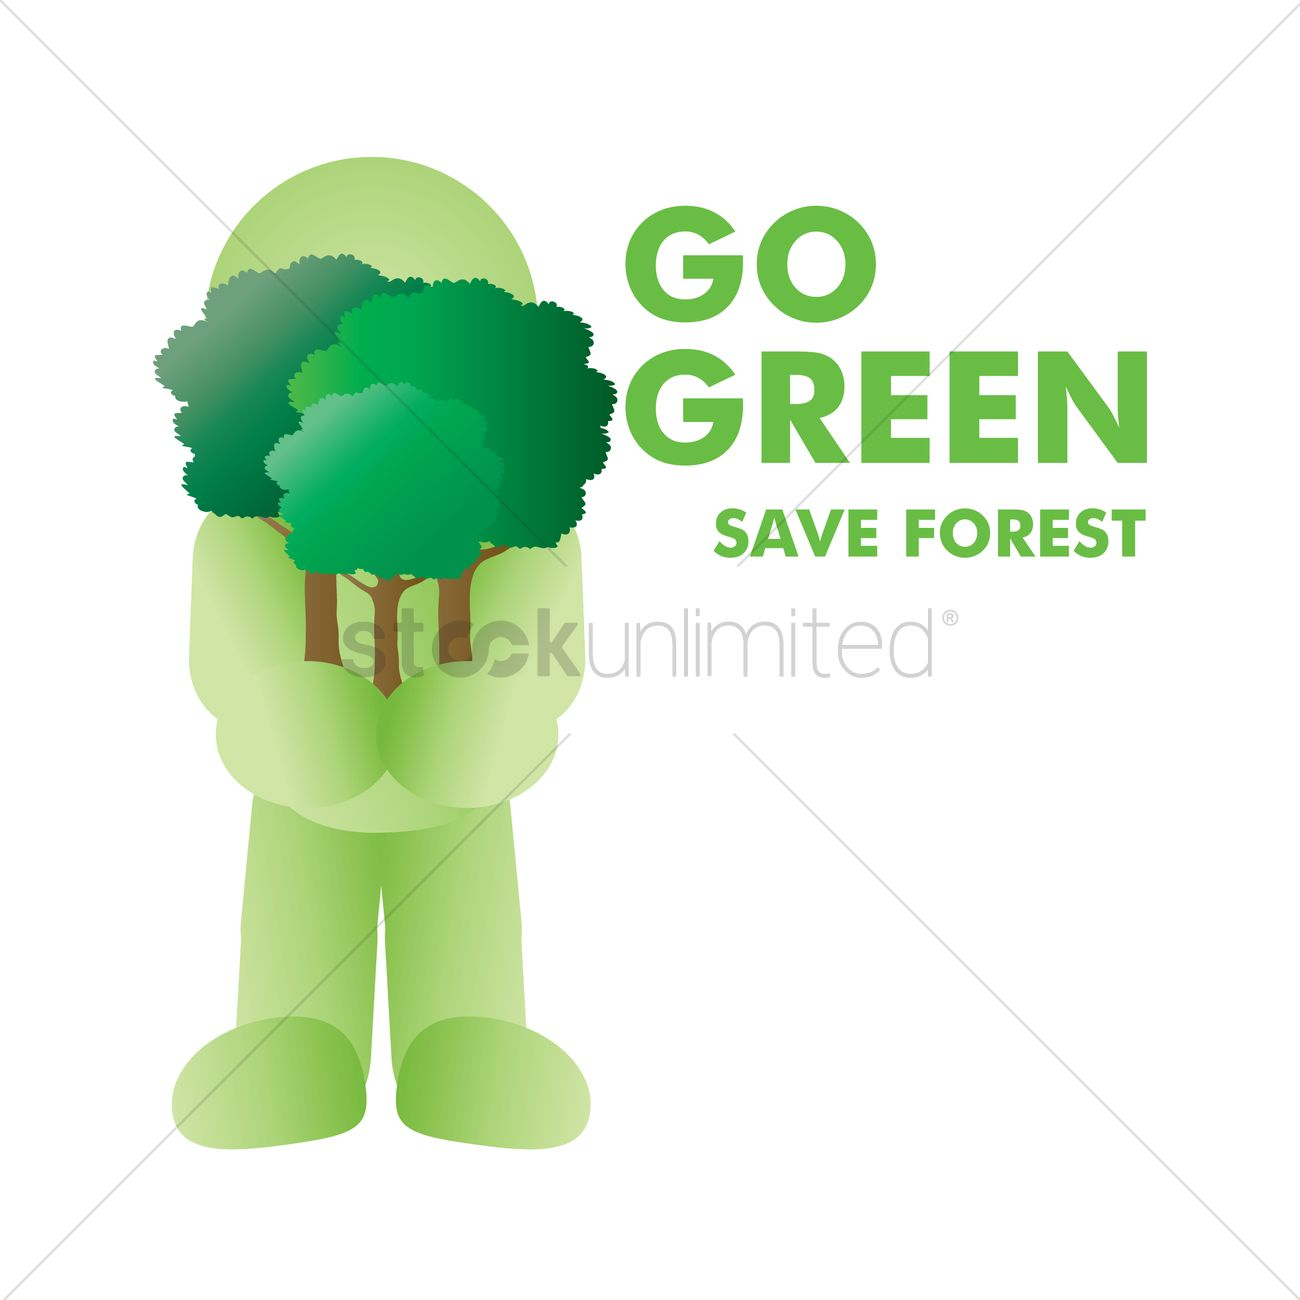 save forest vector image 1271593 stockunlimited